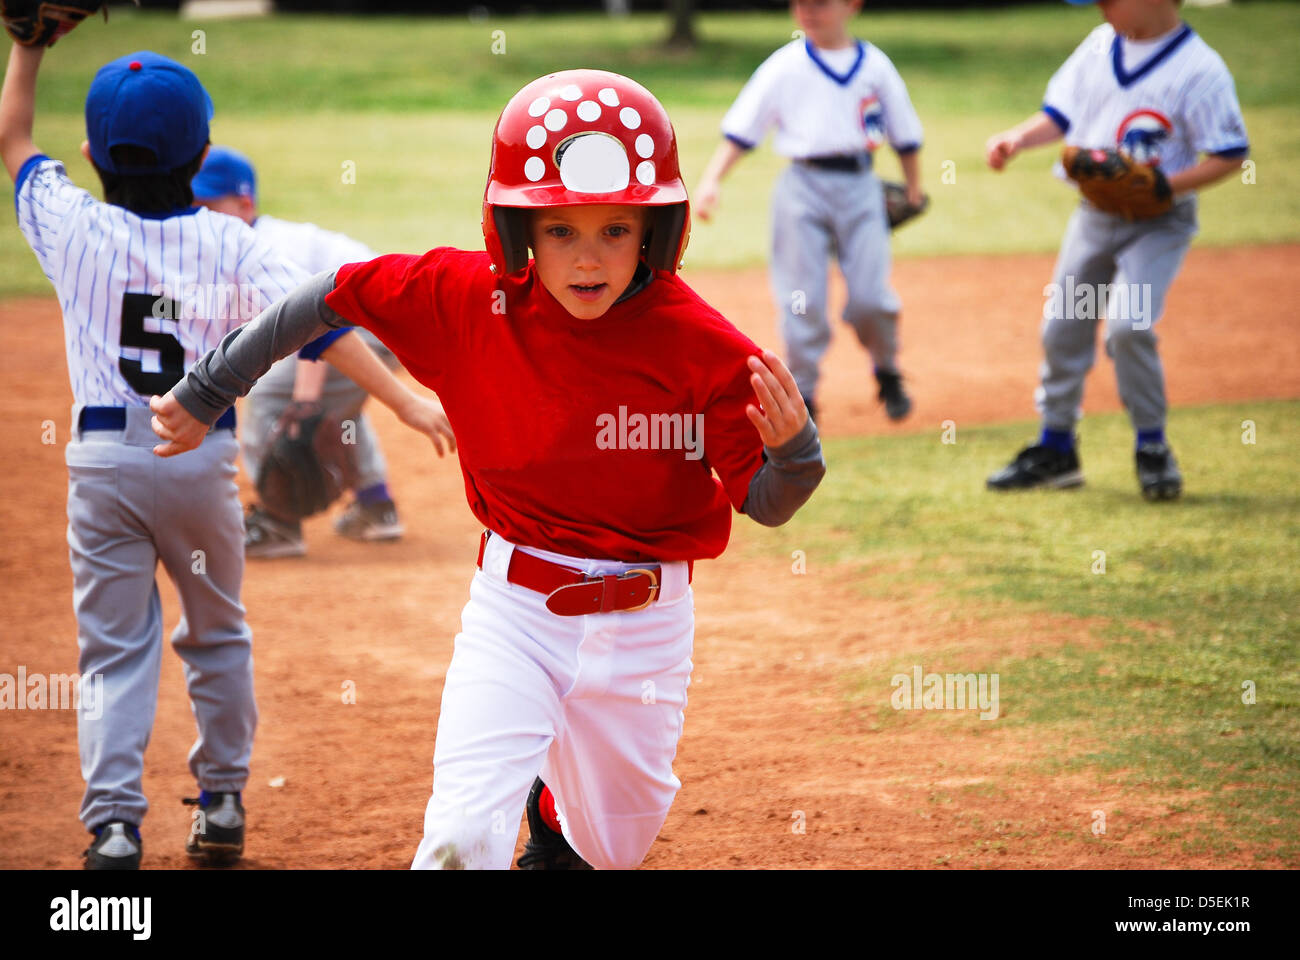 Youth little league baseball boy running bases. - Stock Image